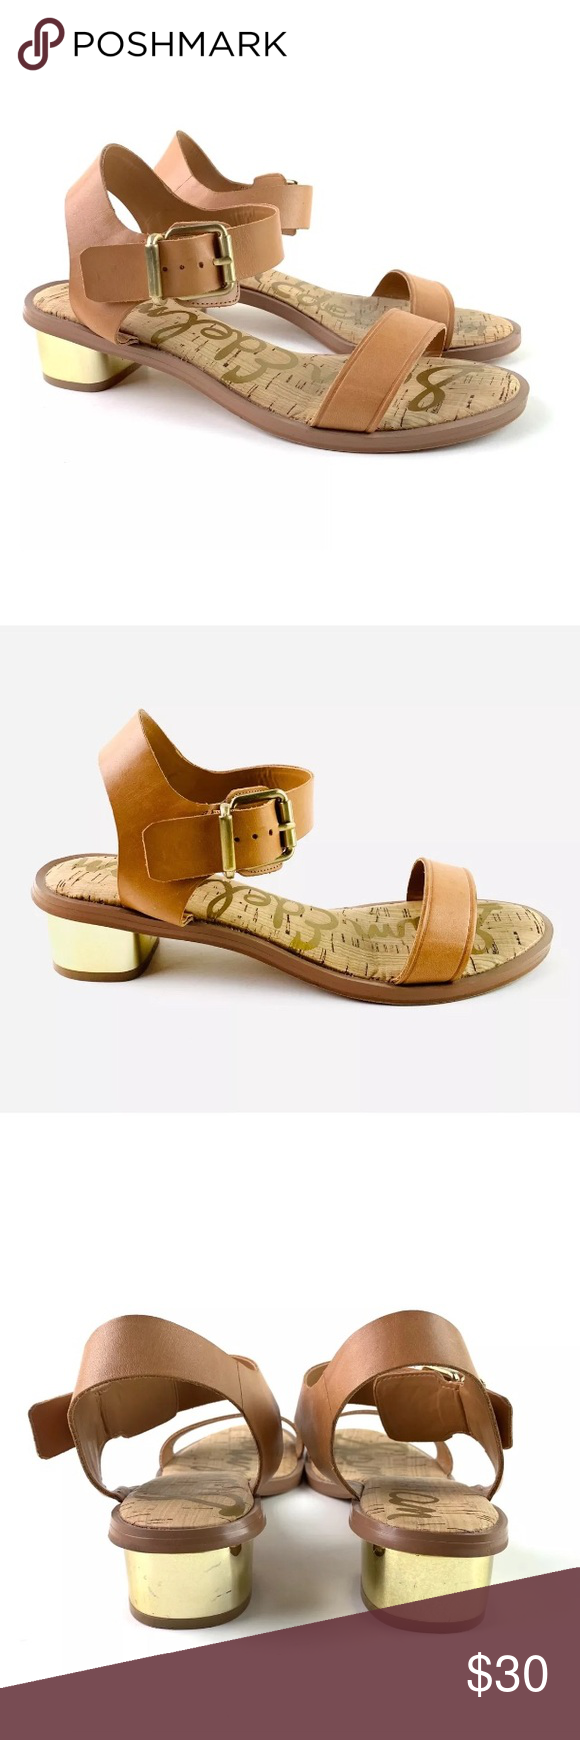 e551a38bde9c Sam Edelman Trixie Open Toe Gold Heel Sandals Low gold heels with ankle  buckle closure Soft cognac brown leather Condition  Pre-owned condition  ...